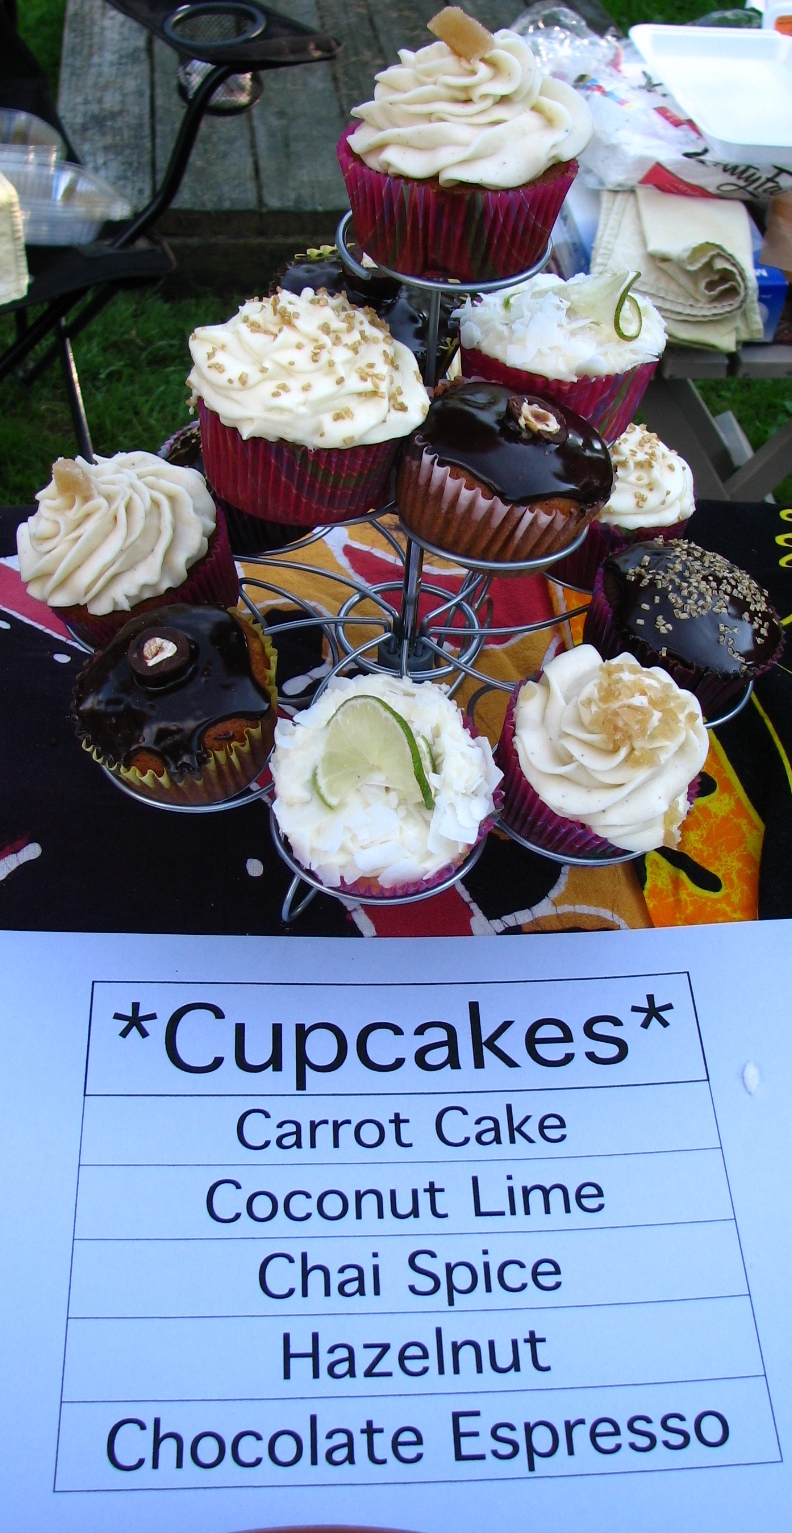 Cupcakes for sale at farmers market